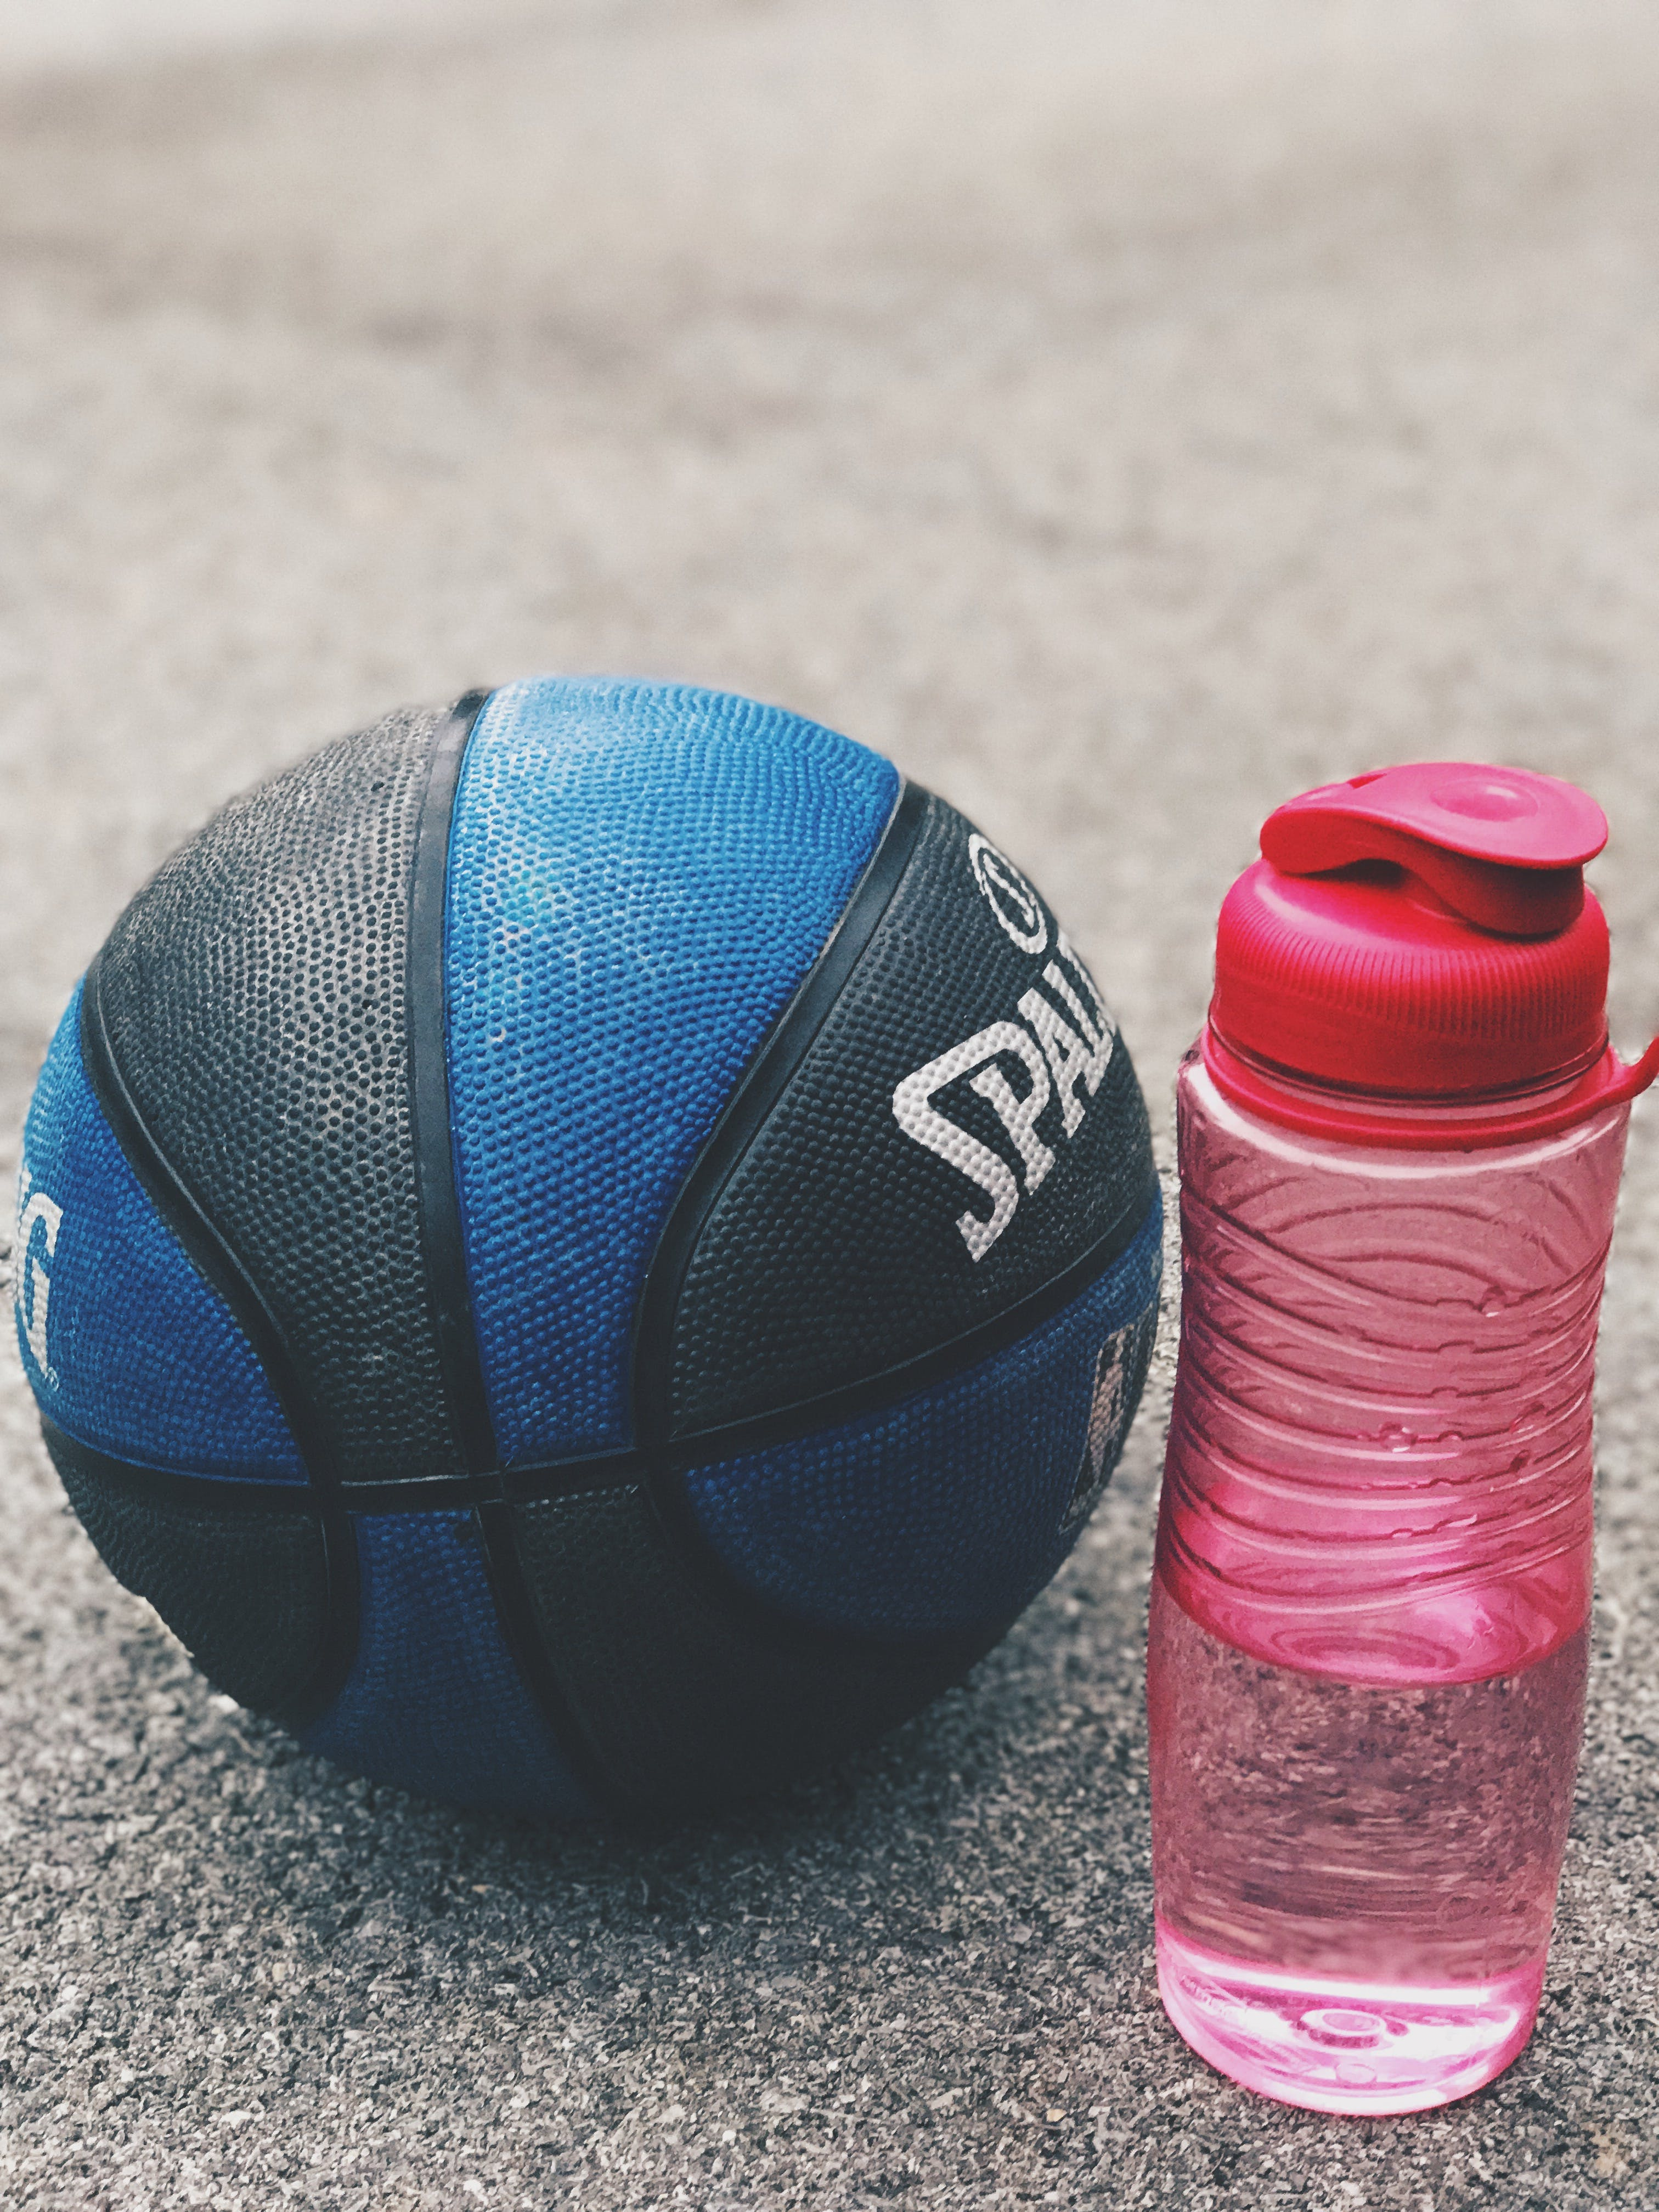 Photo of Basketball Near Pink Water Bottle